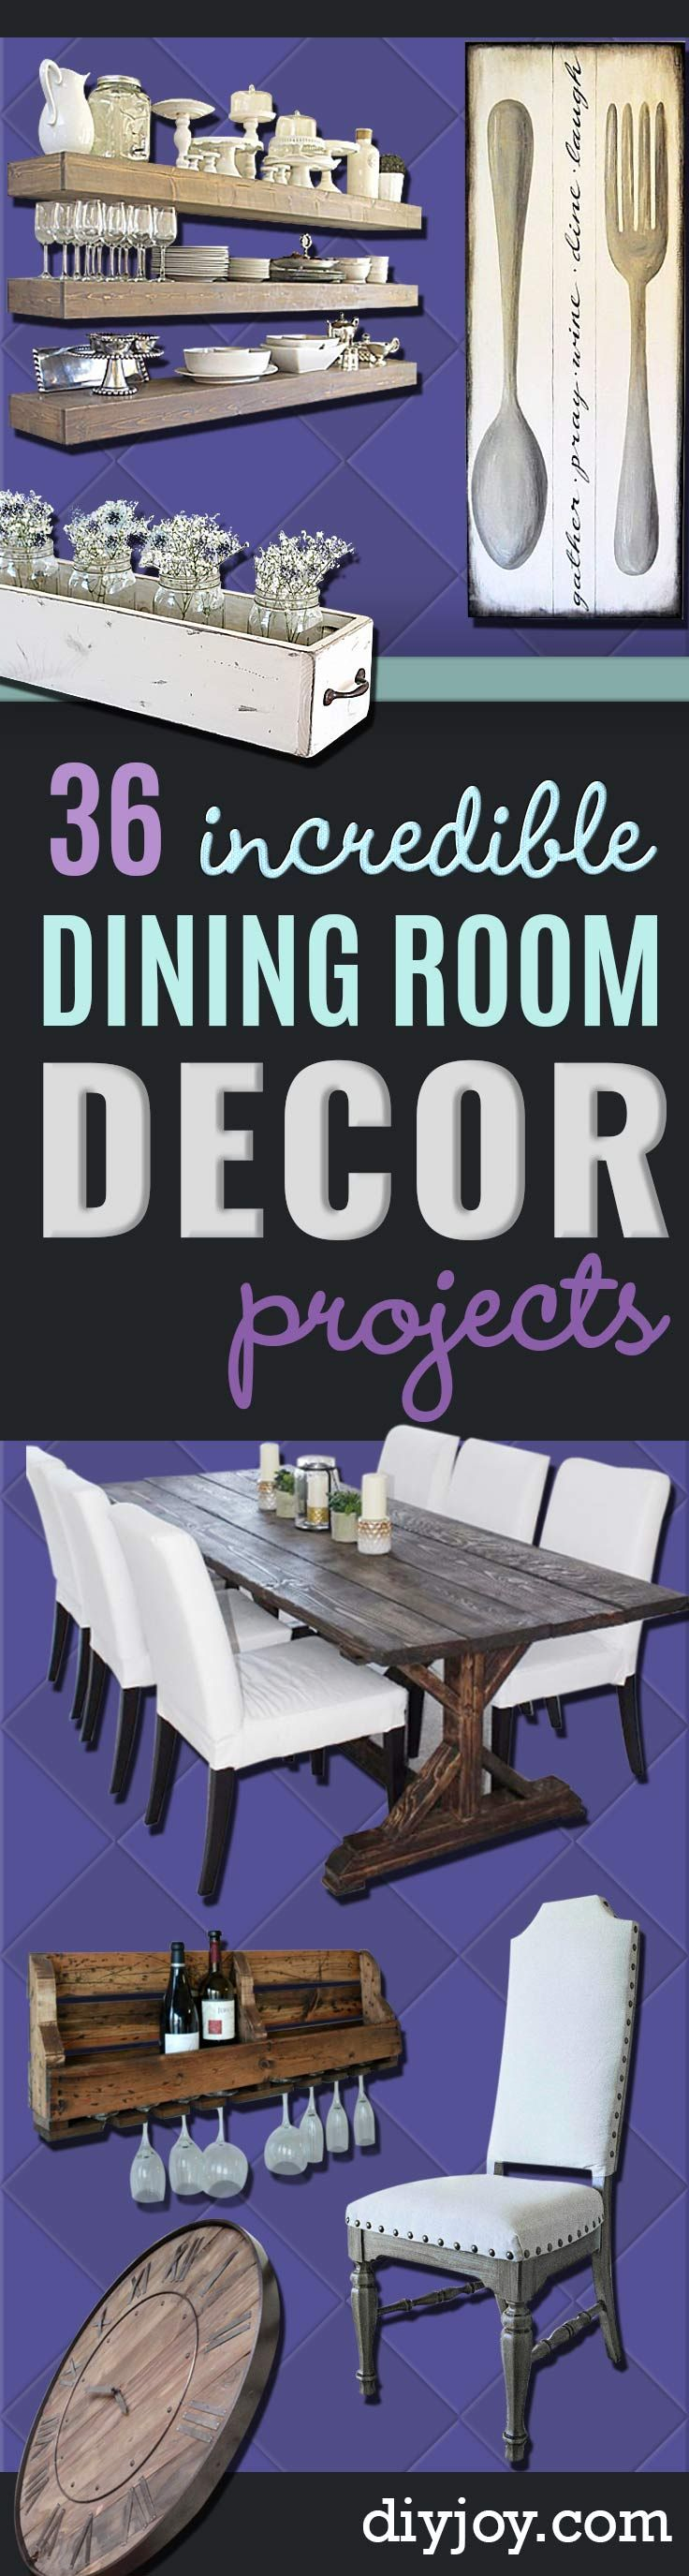 280 best diy decor ideas images on pinterest creativity recycling